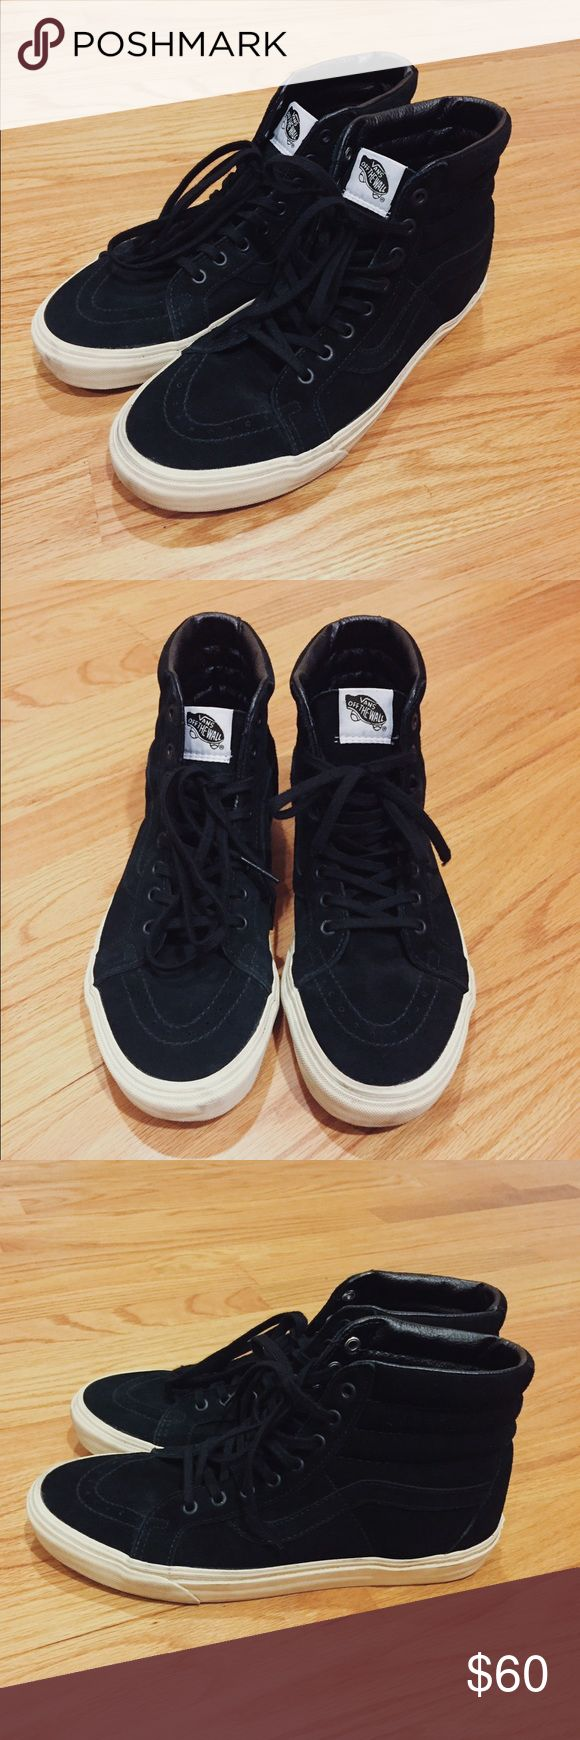 J. Crew x Vans skate hi This is a vans collaboration with J. Crew, all black suede with cream mid-sole perfect for your everyday casual/work attire. This is an essential piece for your closet. Vans Shoes Sneakers